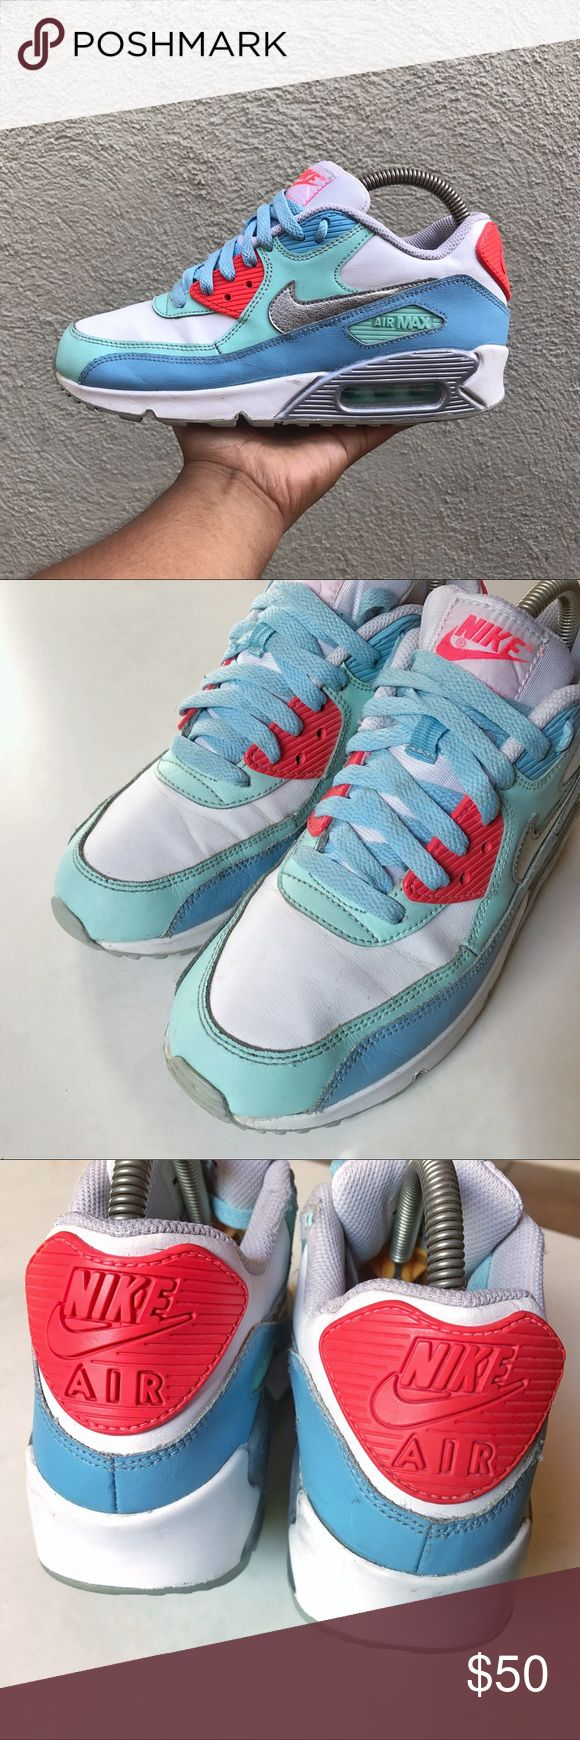 Nike Air Max 90 women shoes size 6Y - 7.5 Pre-owned Nike Air Max 90 Leather (GS) Big Kids Size 6Y/ Women 7.5 Shoes White/Metallic Silver-Lakeside-Artisan Teal 724852-100 Nike Shoes Sneakers